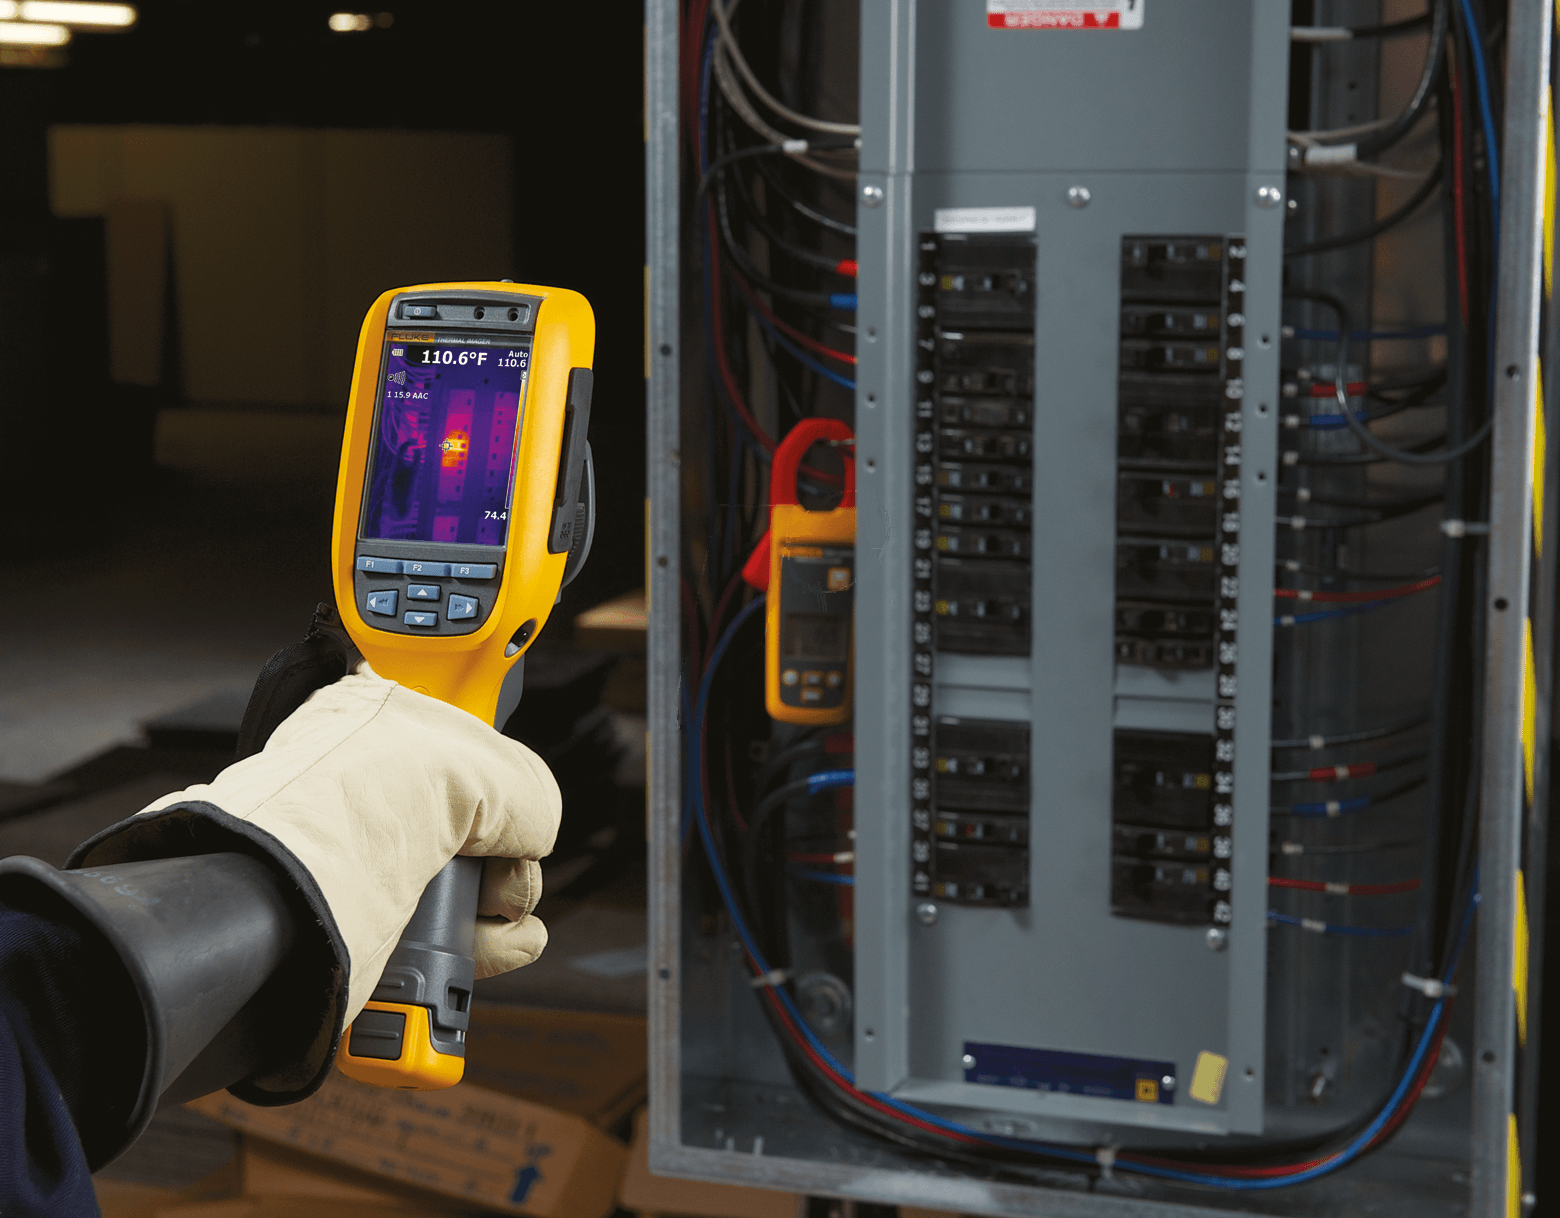 Fluke Ti125 Thermal Imager, -20°C to +350°C